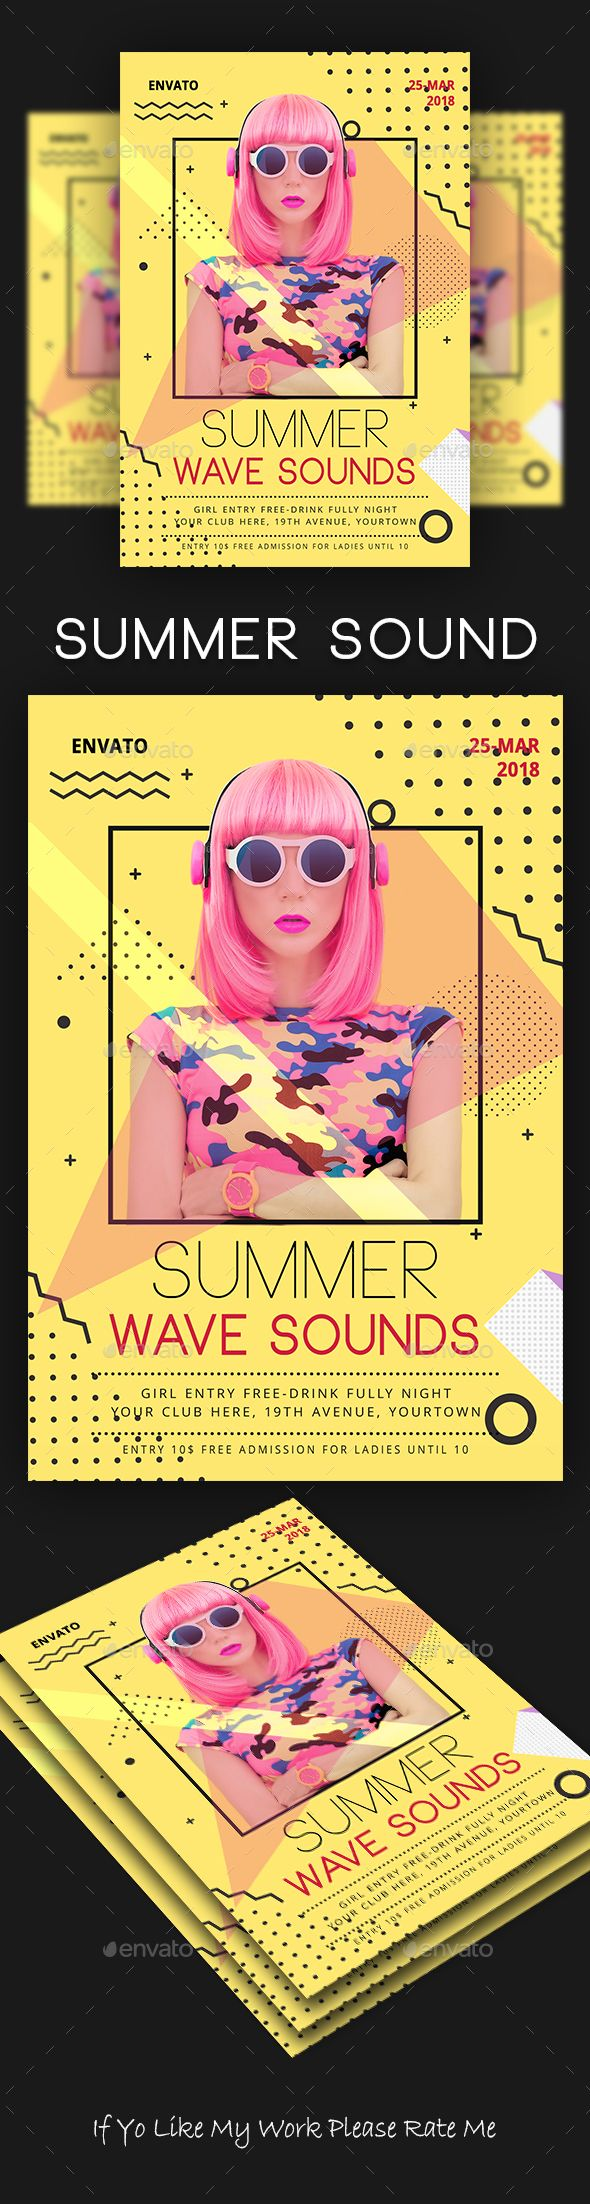 Summer Sound Party Flyer Template PSD